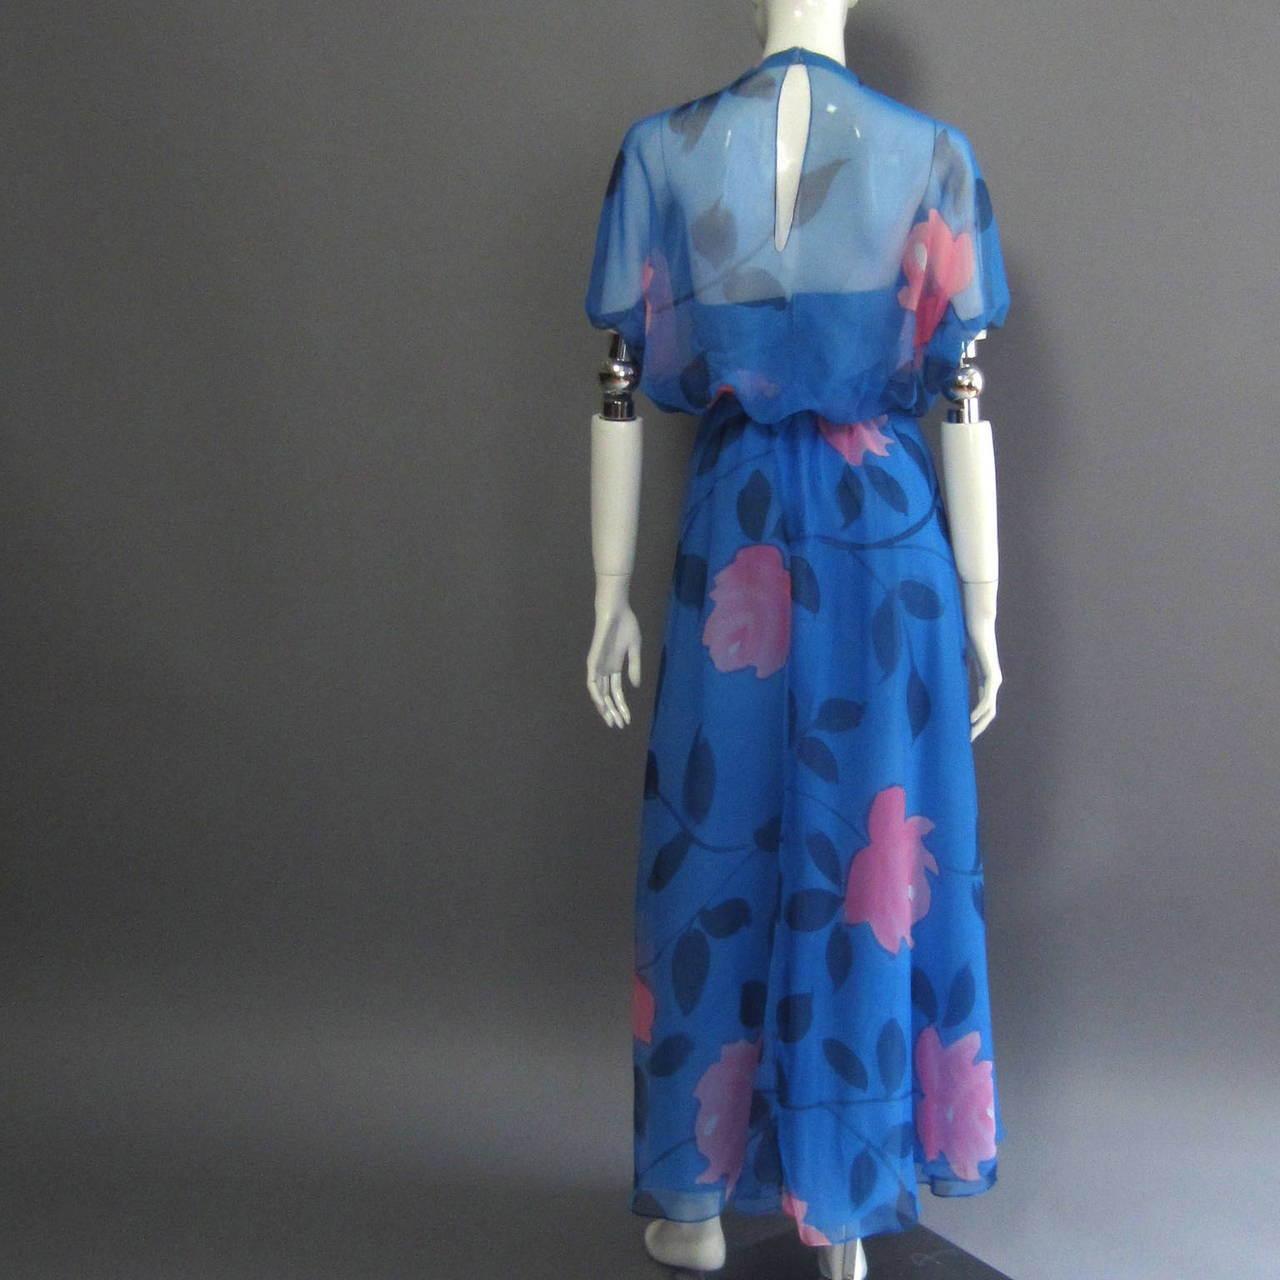 1970s ESTEVEZ Floral Print Maxi Dress 6